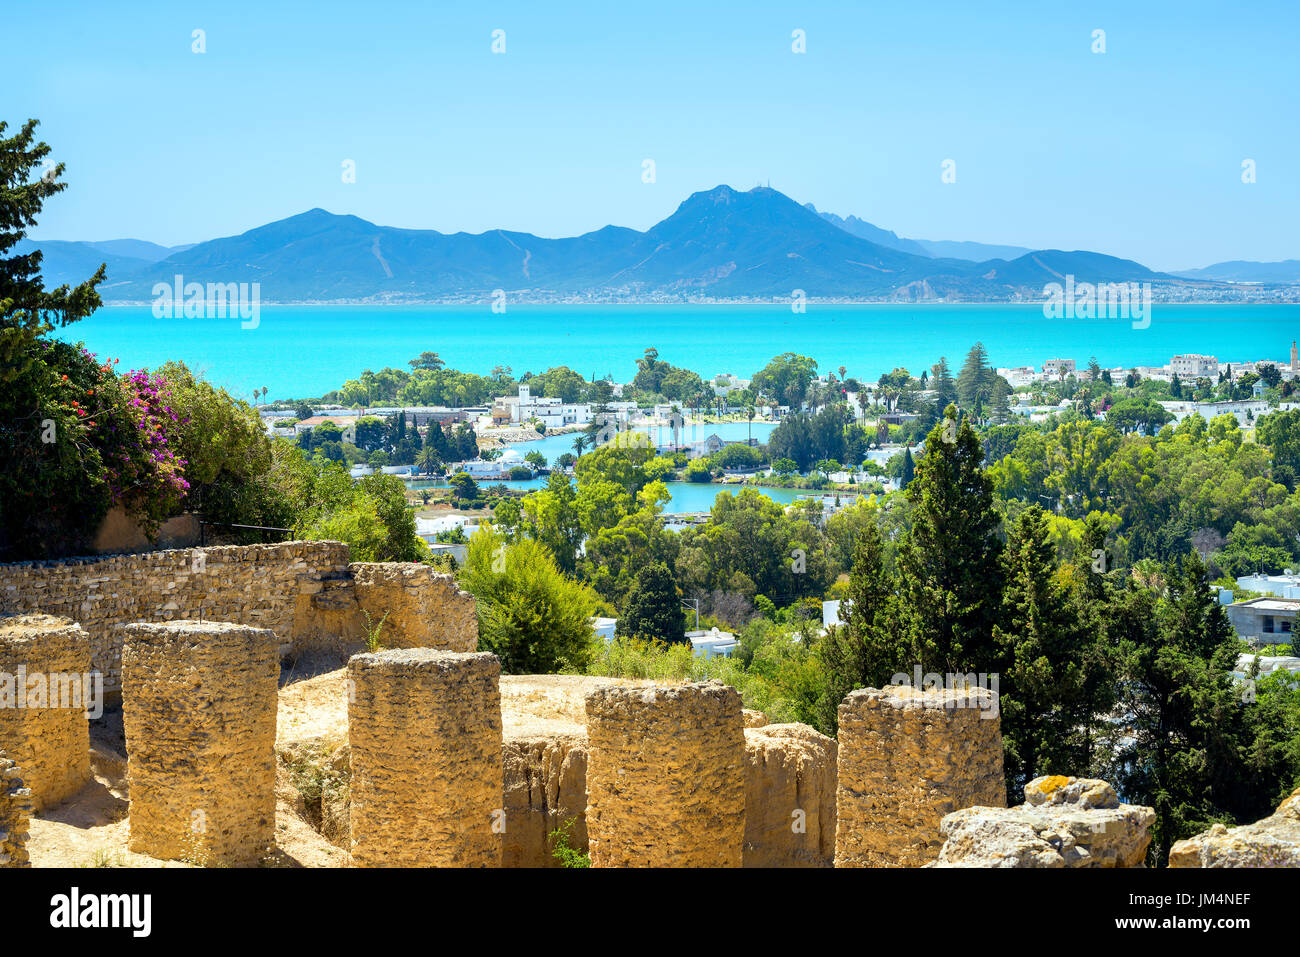 Landscape with ancient ruins of Carthage. Tunis, Tunisia, Africa - Stock Image